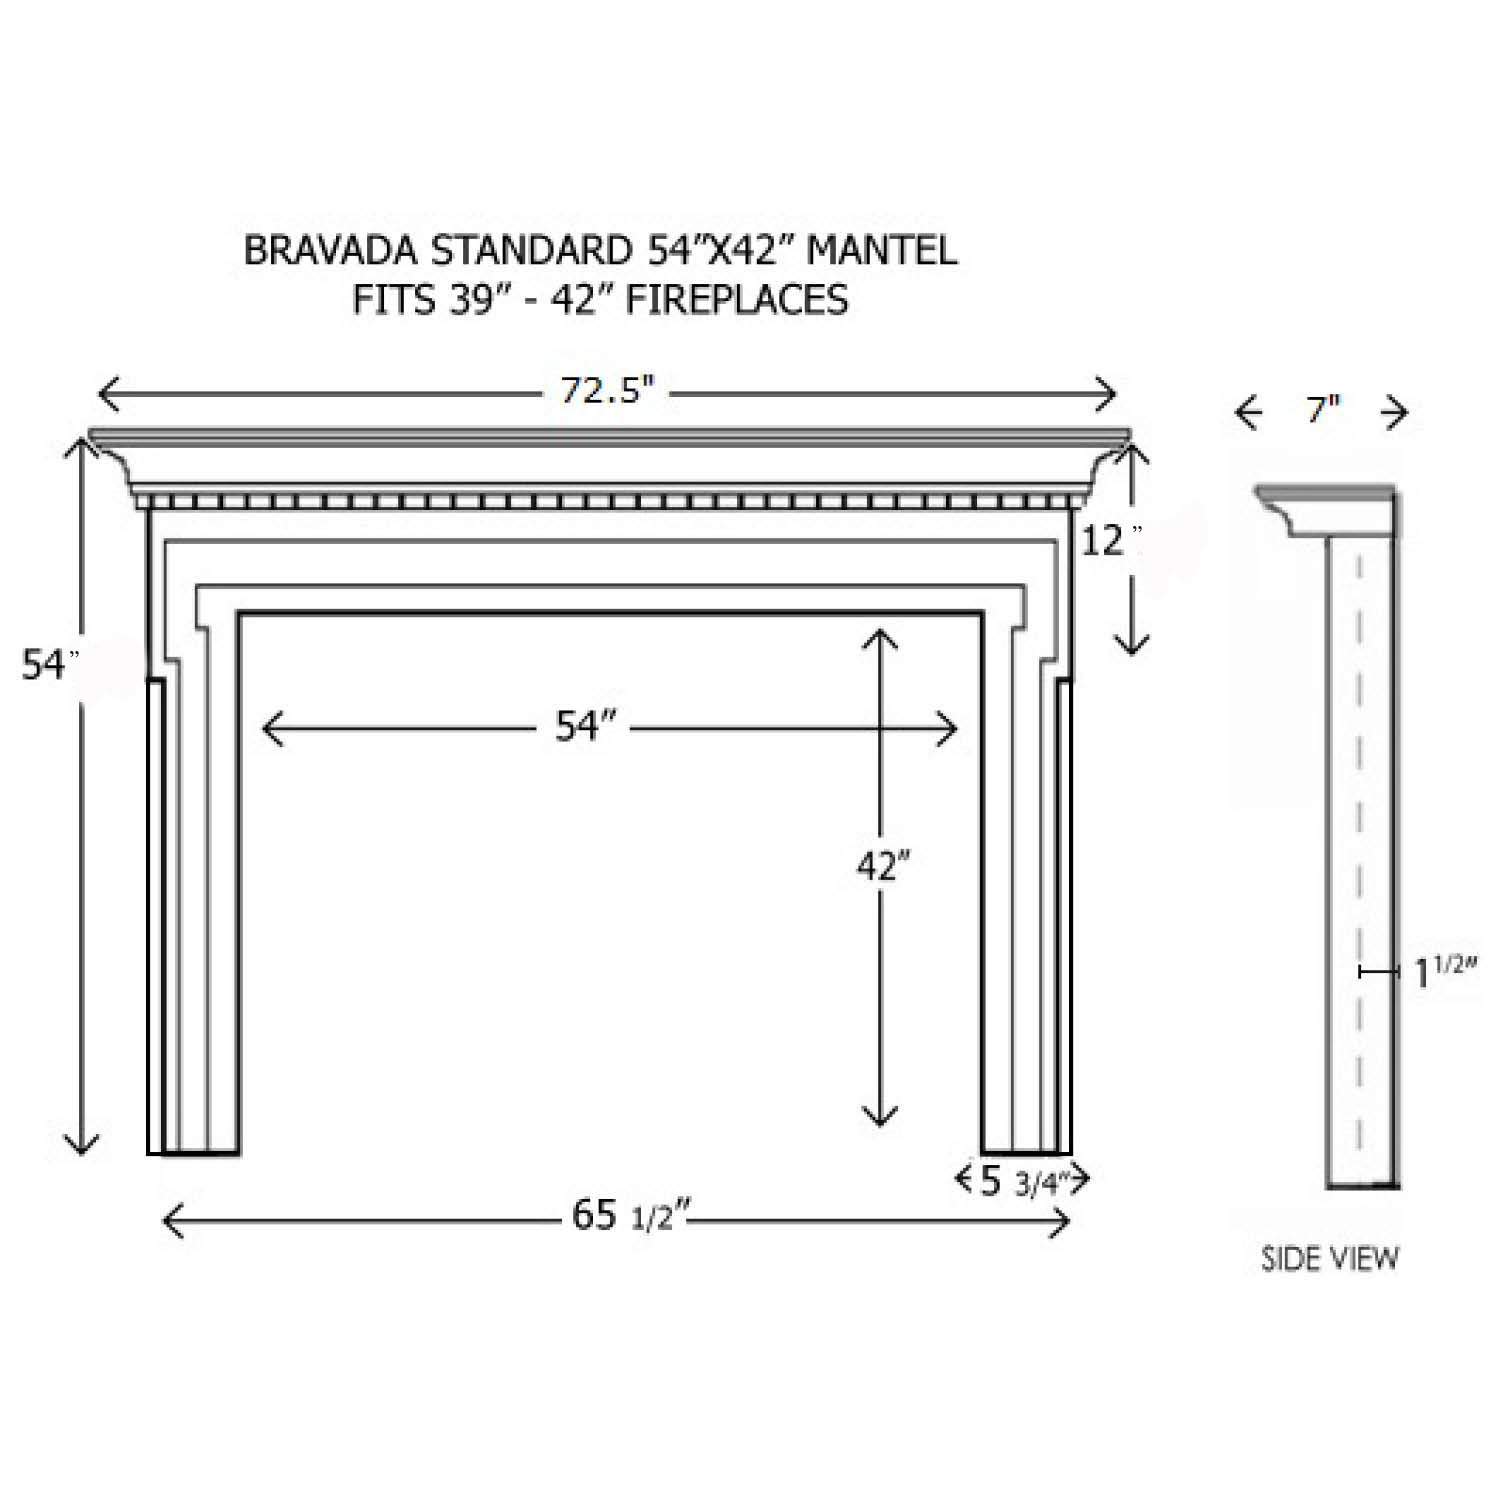 Fireplace Mantel Parts Bravada Wood Mantel Standard Sizes